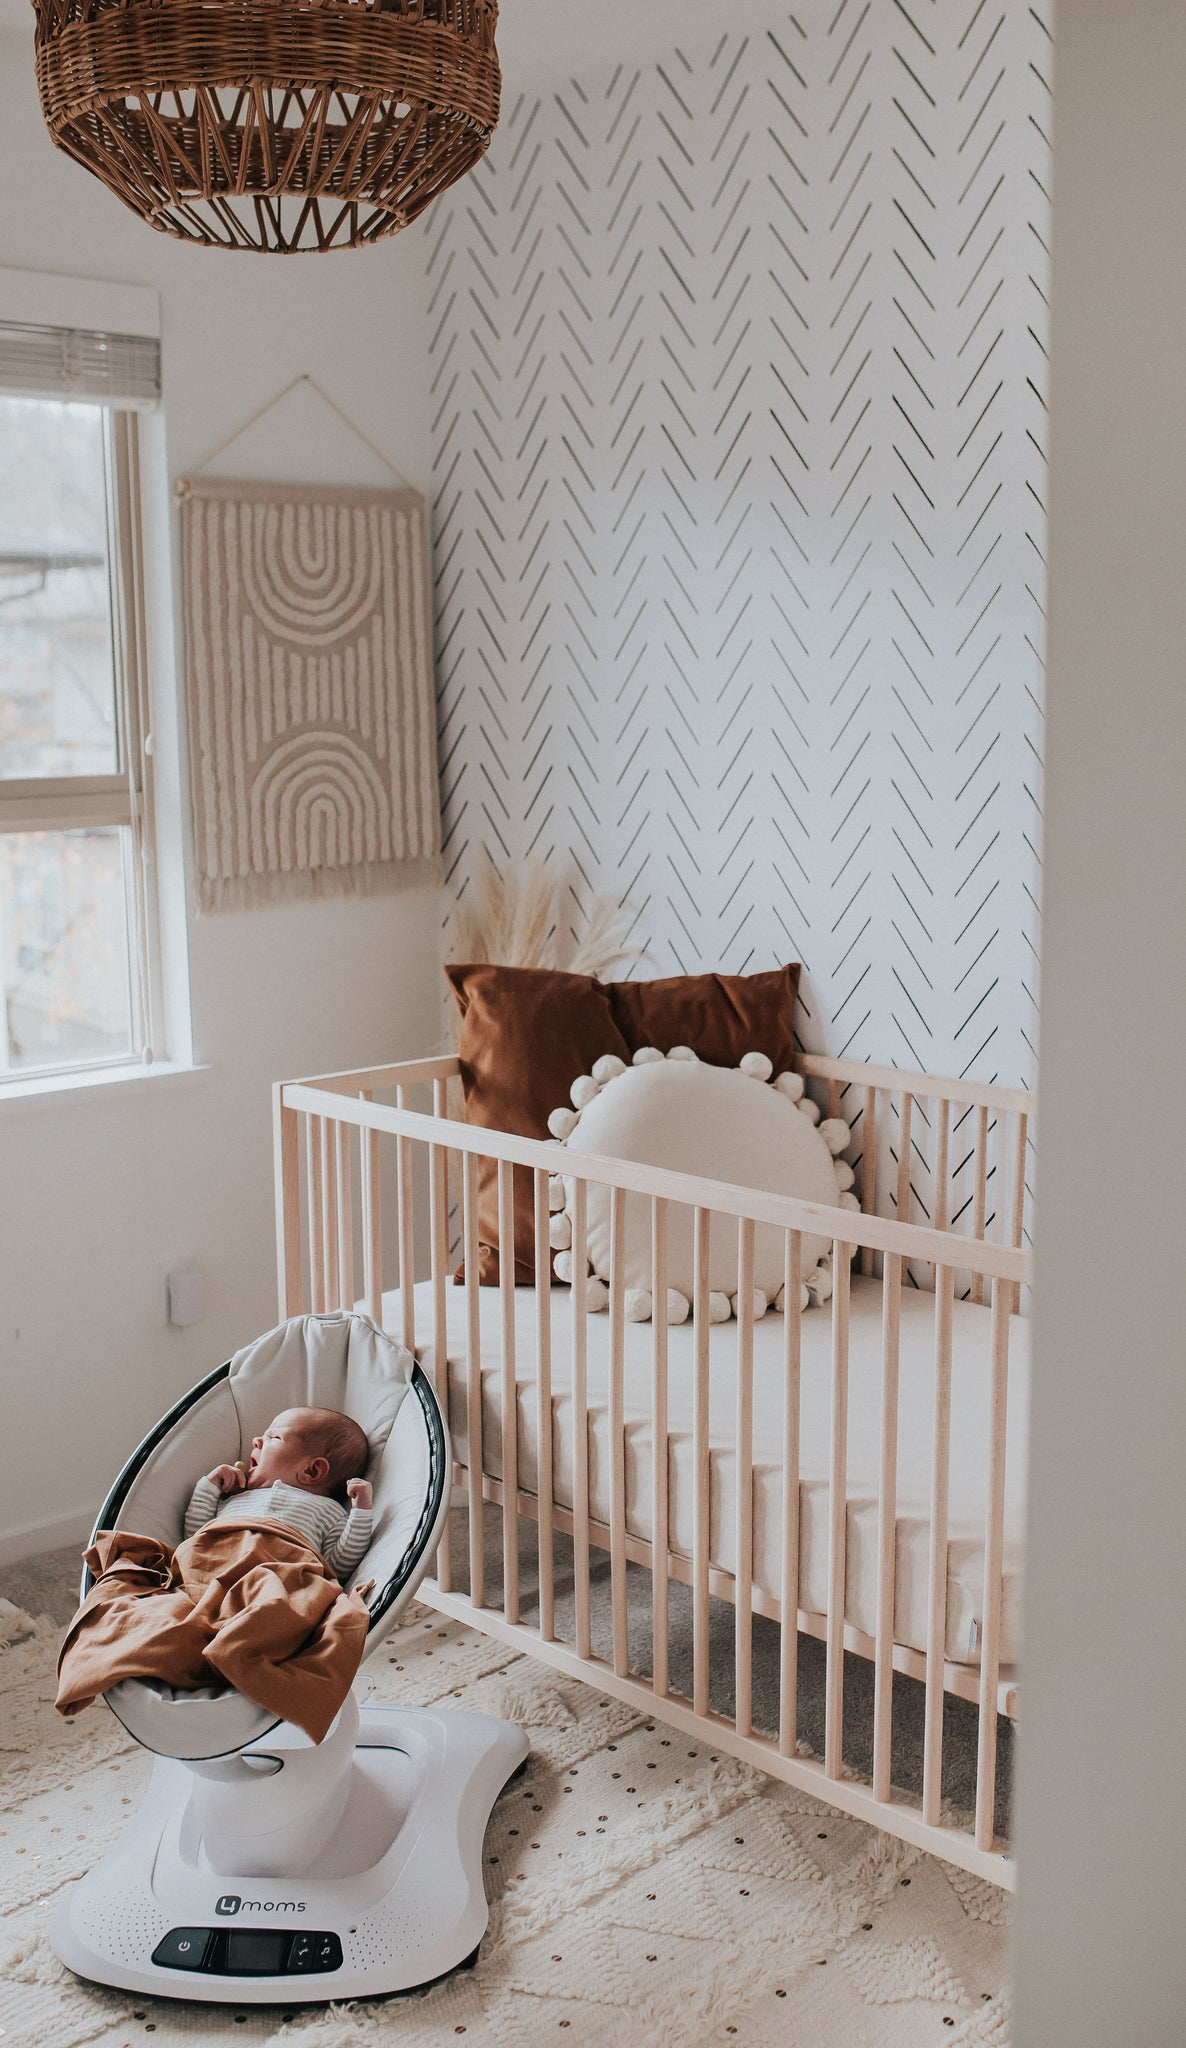 Neutral interior designs for welcoming a newborn baby